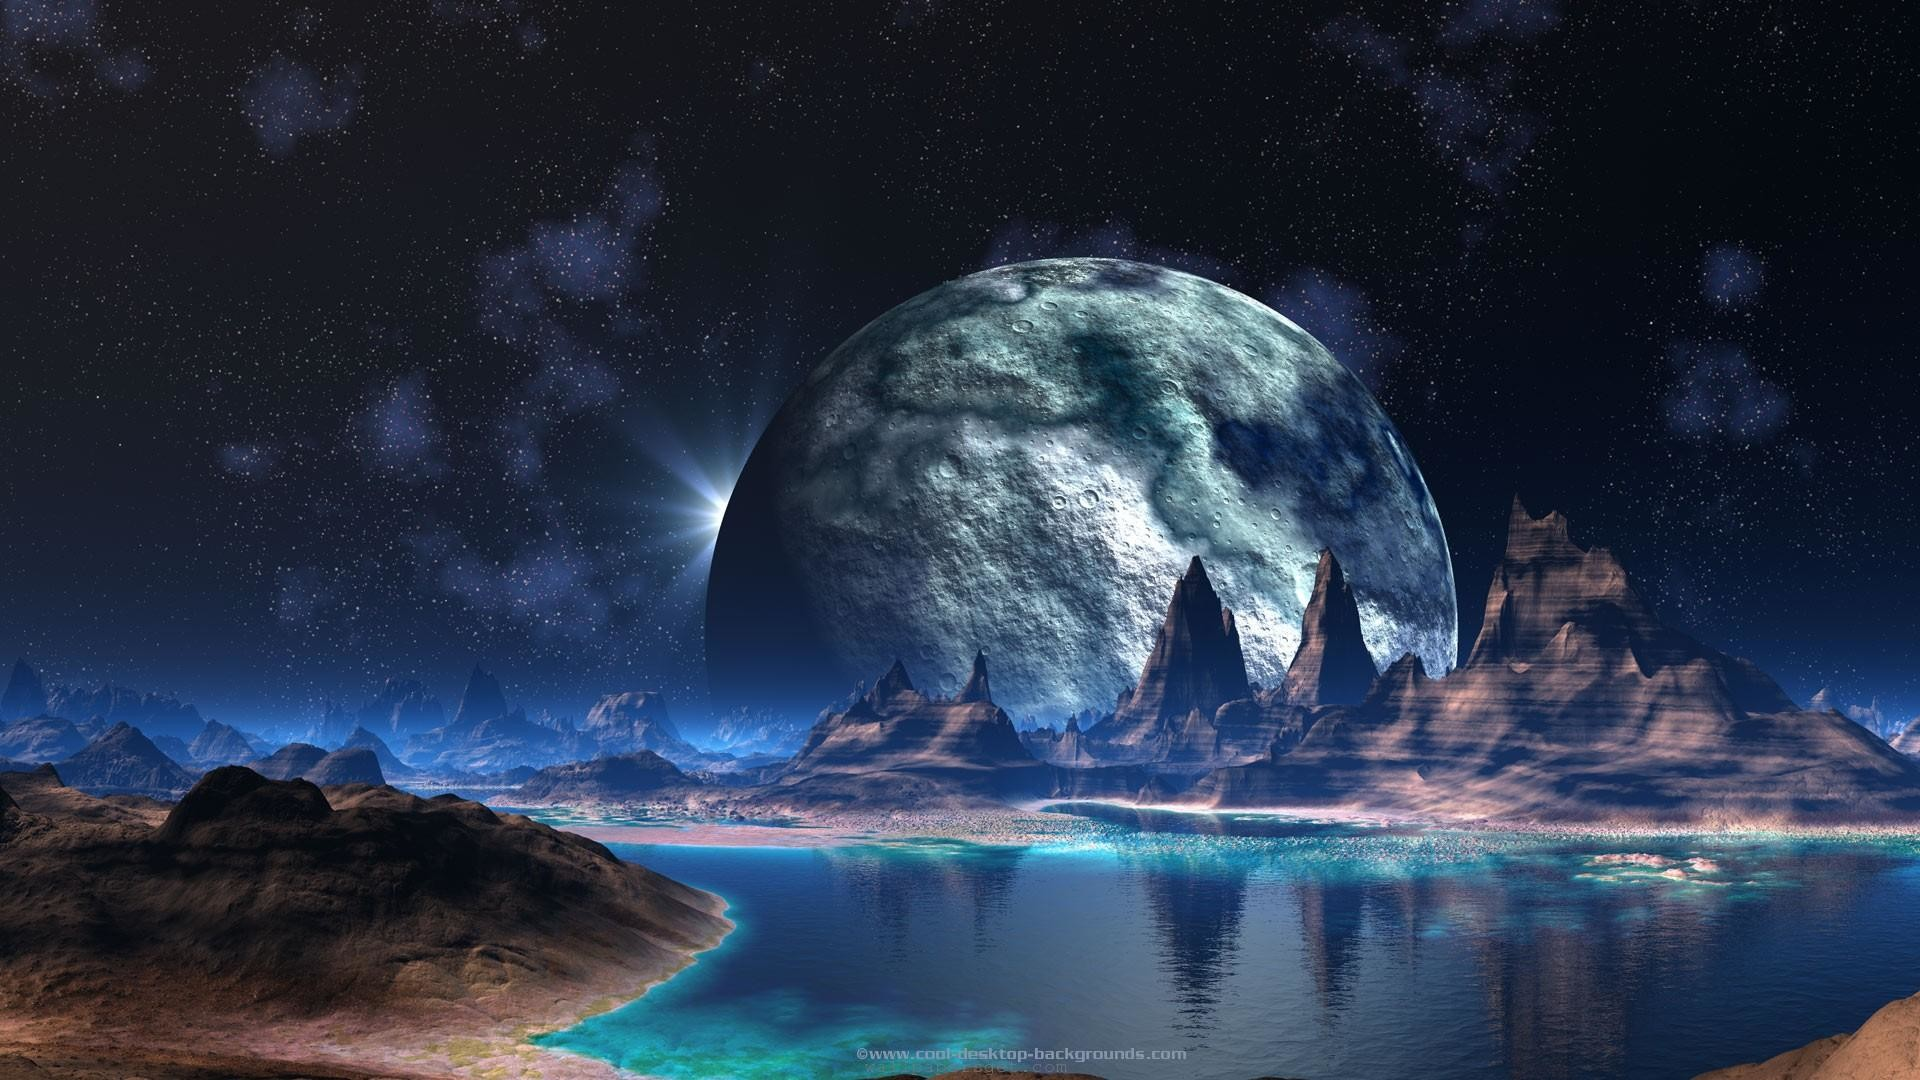 Cool Space Wallpapers Free with High Definition Resolution px  262.68 KB